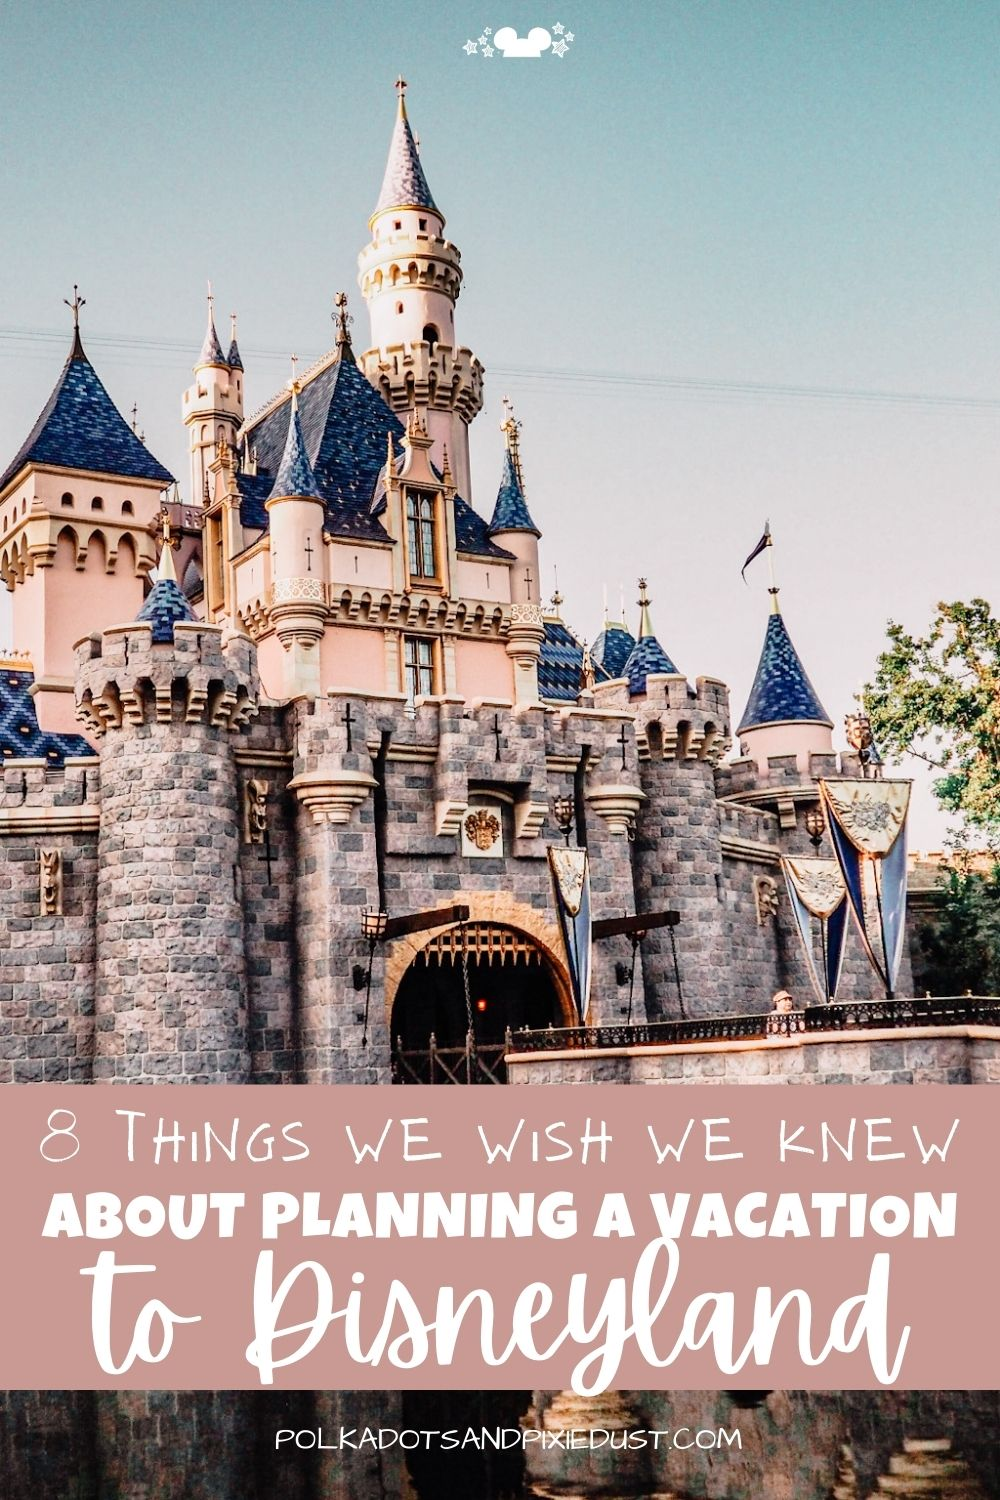 Disneyland Vacation Planning and everything we wish we knew!